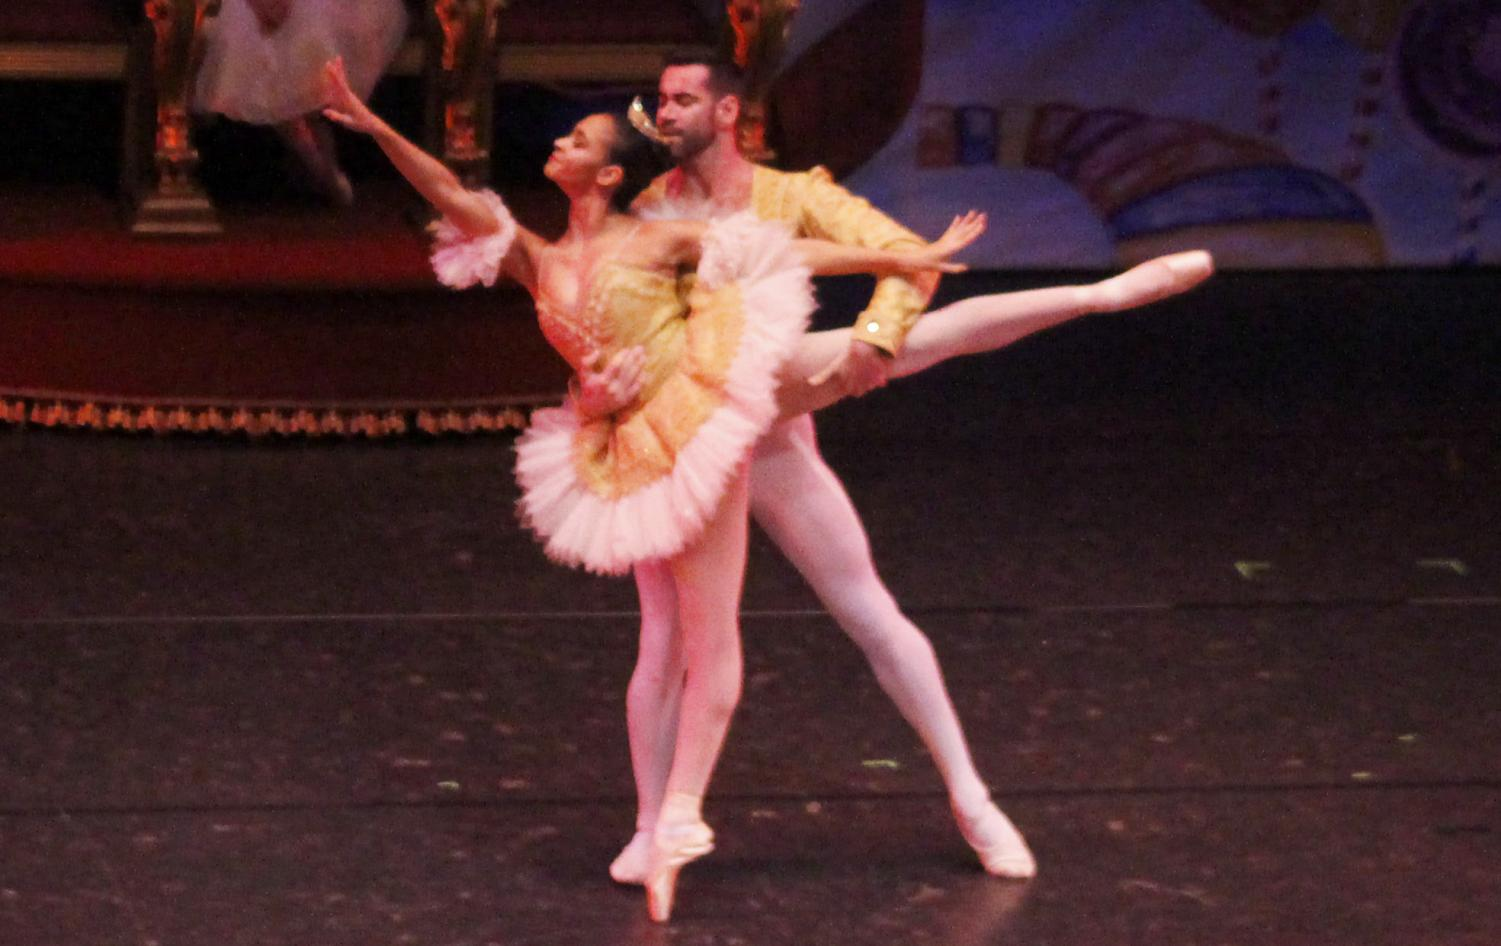 The Hammond Ballet Company put on its annual